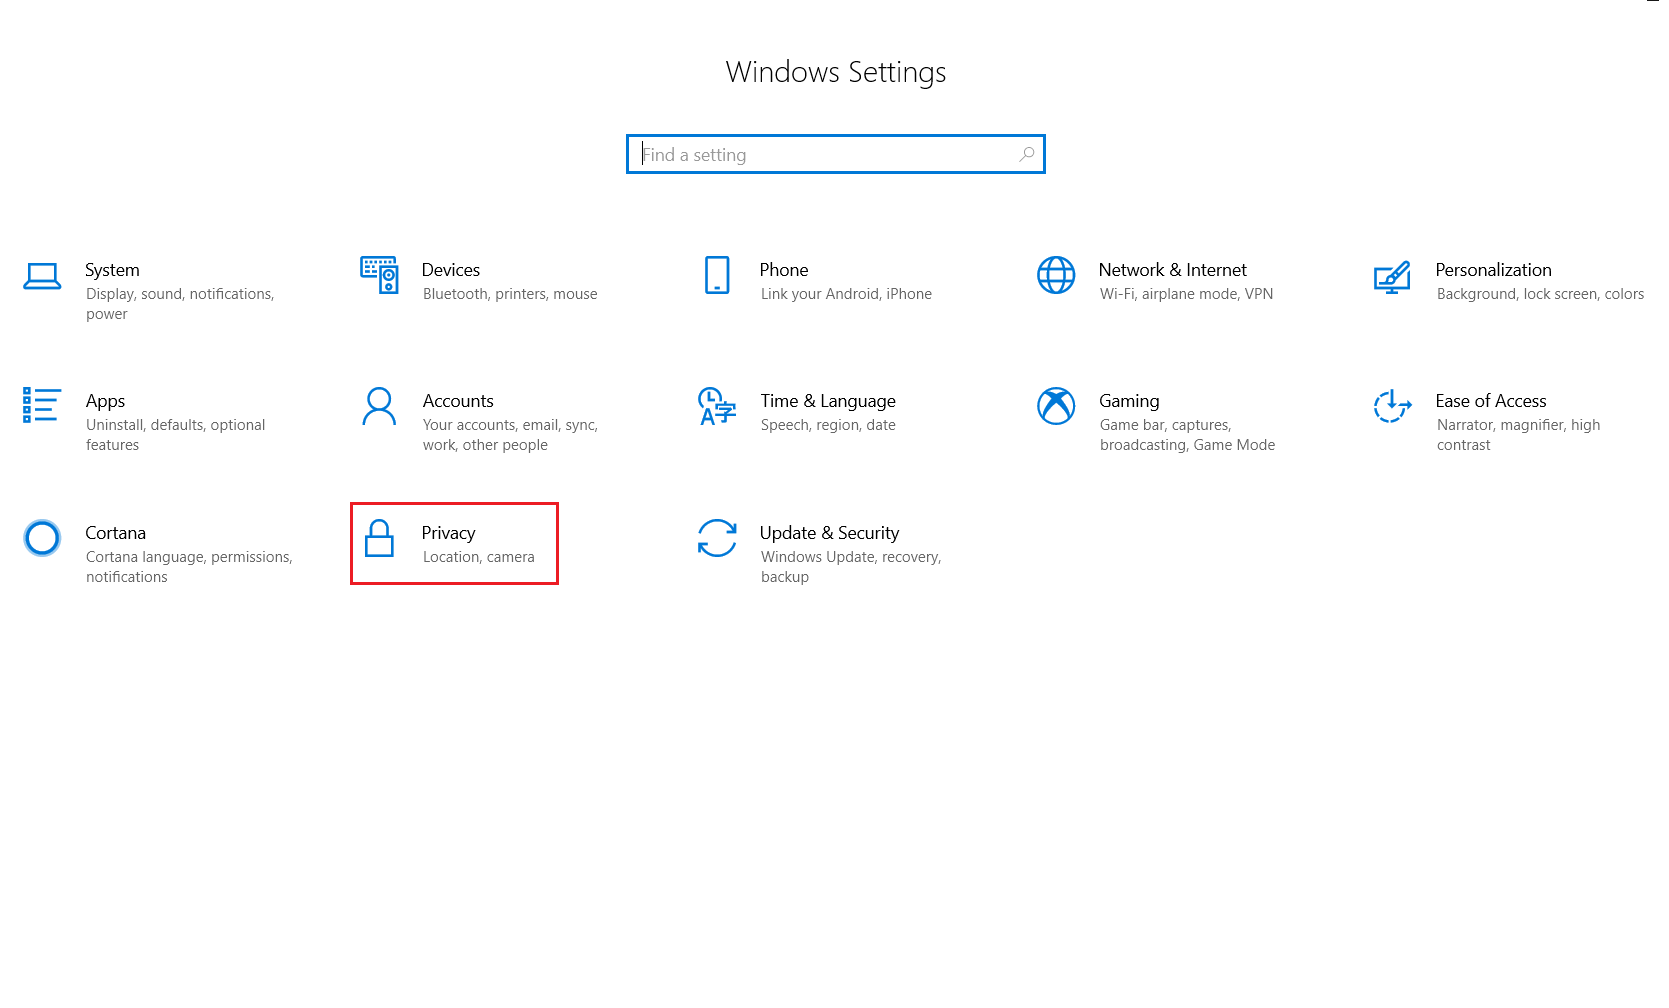 Navigating to Privacy under Windows 10 Settings to enable Location services for Geolocation tracking